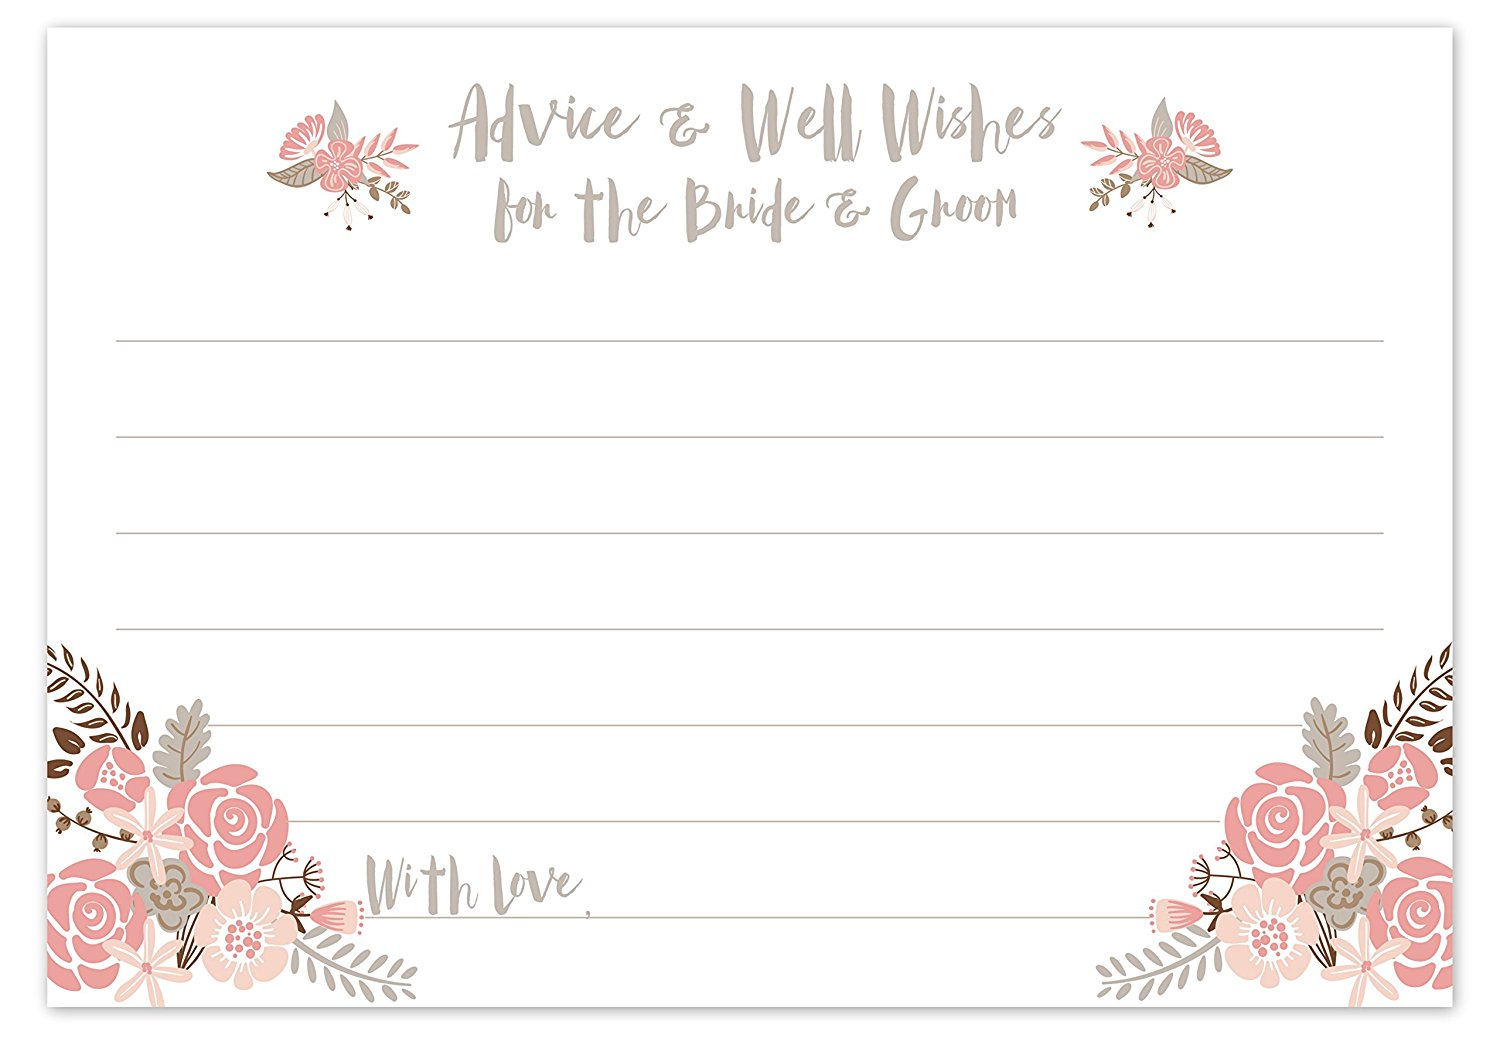 boho floral wedding advice cards advice well wishes for the bride groom